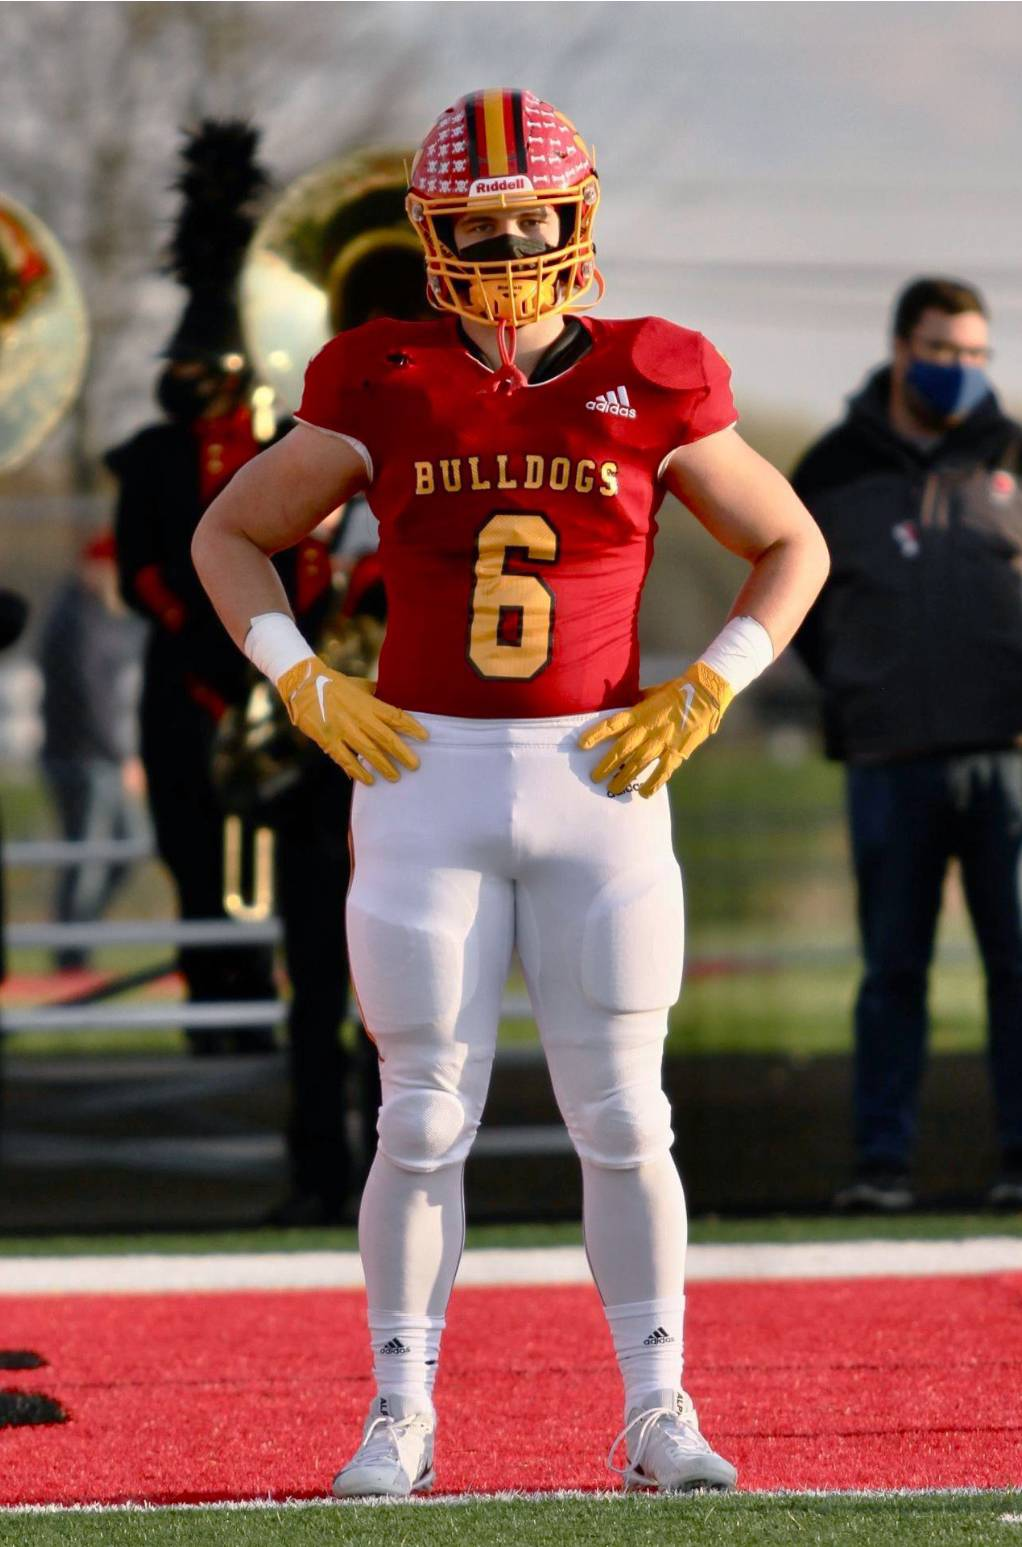 Physical play, toughness, work ethic -- Batavia's Weerts has it all